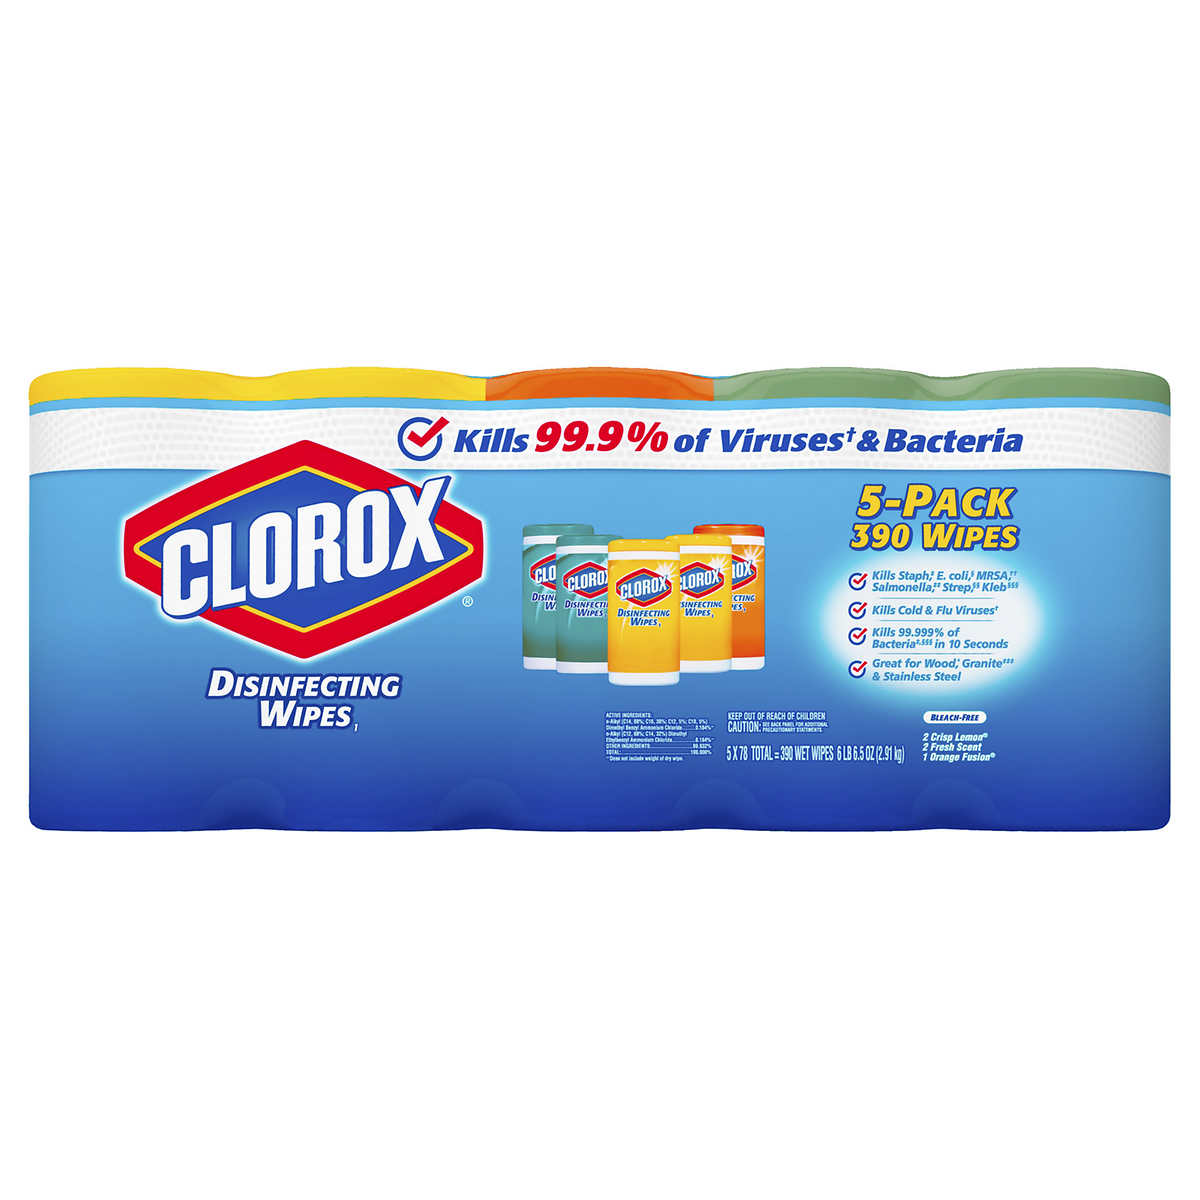 Clorox Disinfecting Wipes, Variety Pack, 78-count, 5-pack